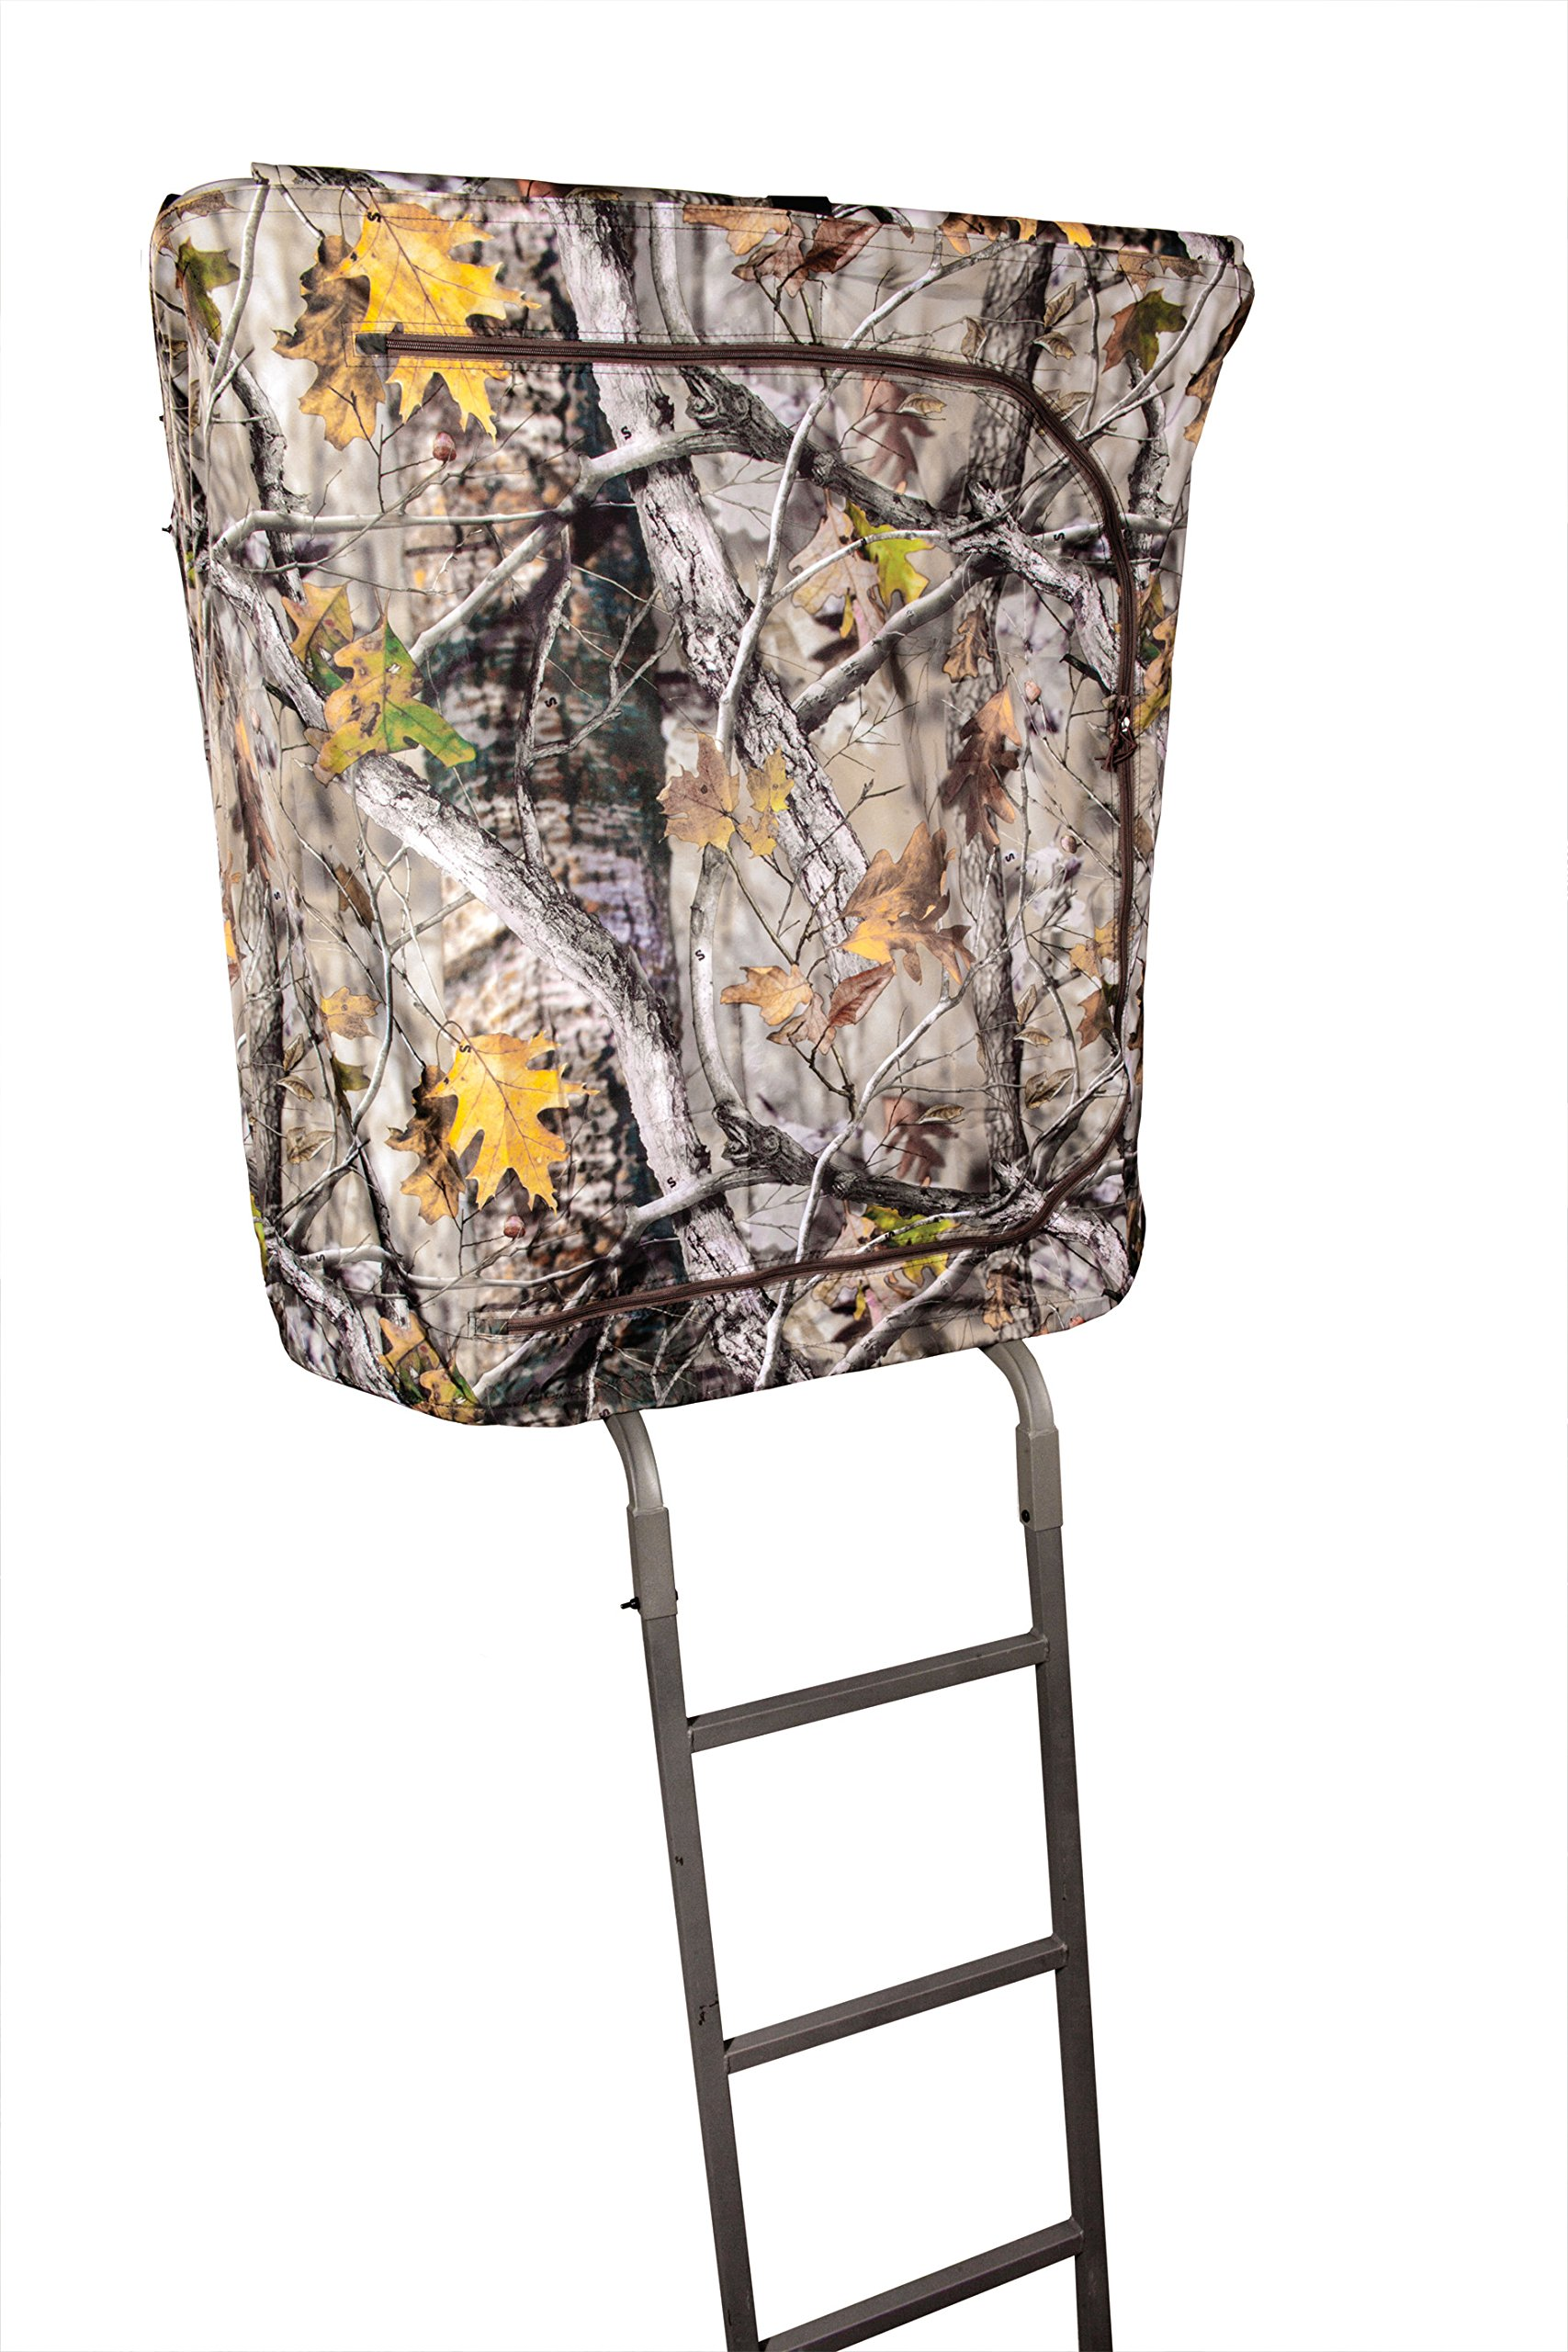 Summit Treestands SU85266 Dual Pro Ladder Blind